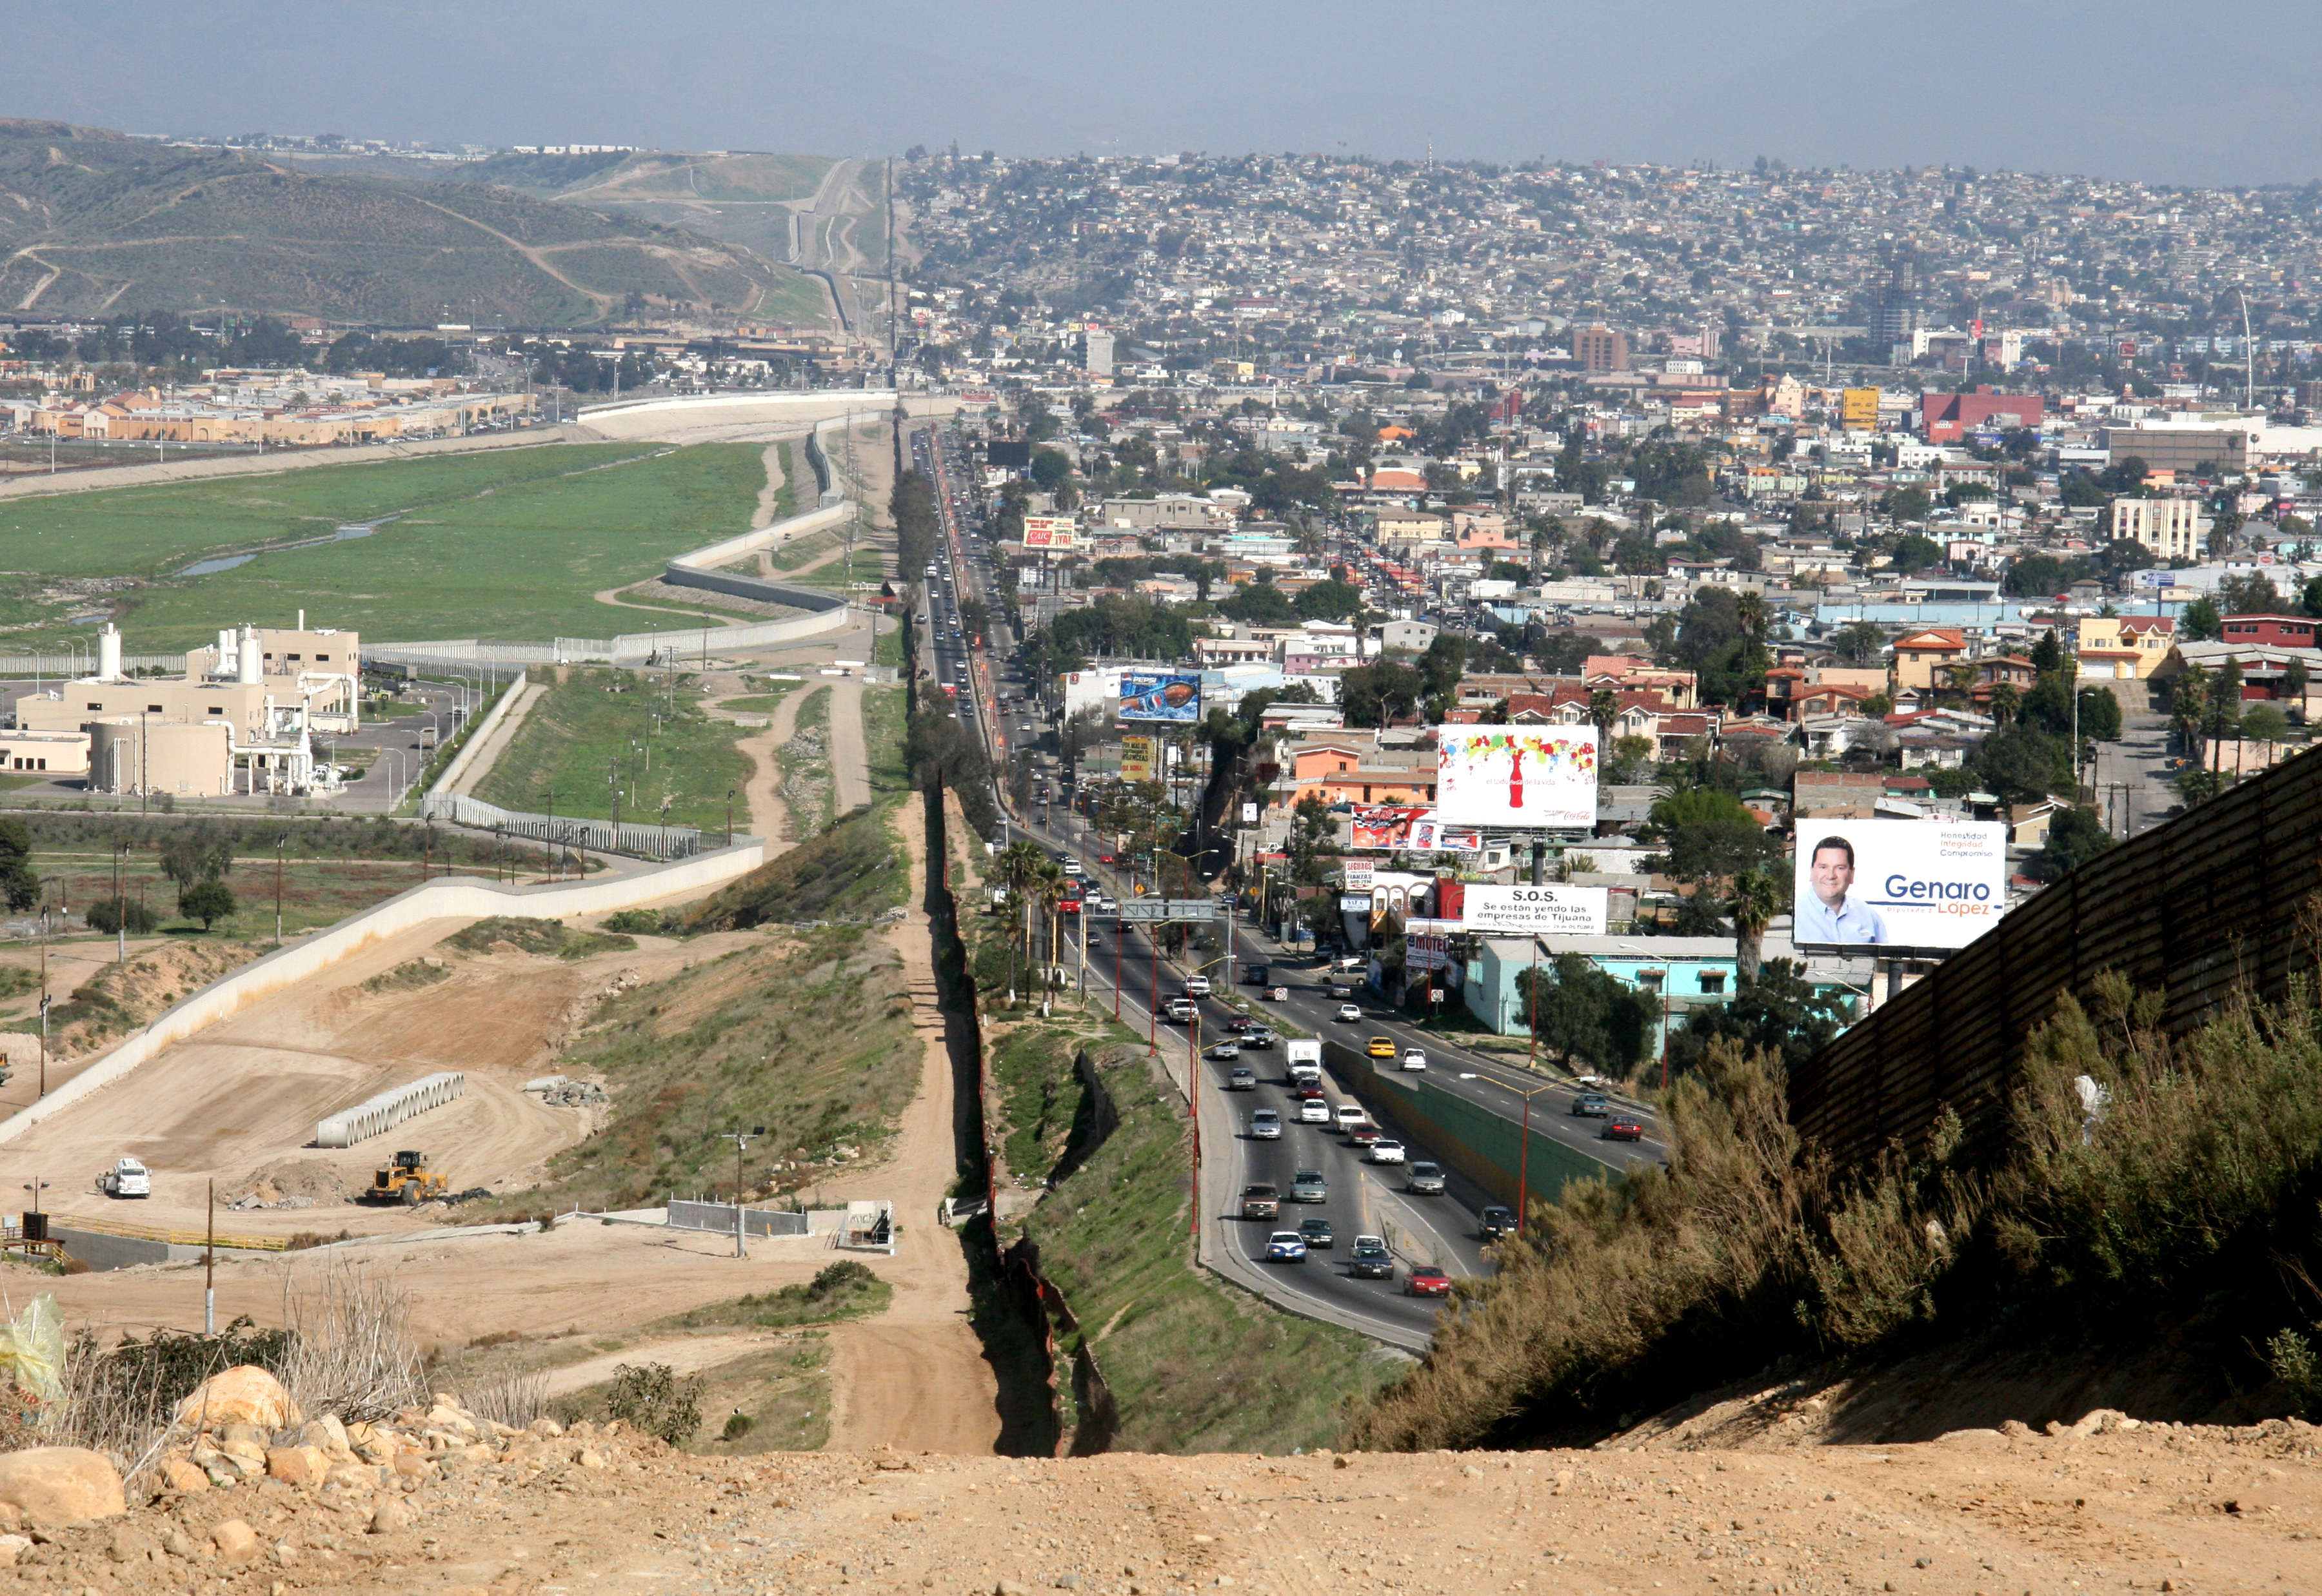 On the right is Tijuana, on the left is San Diego.